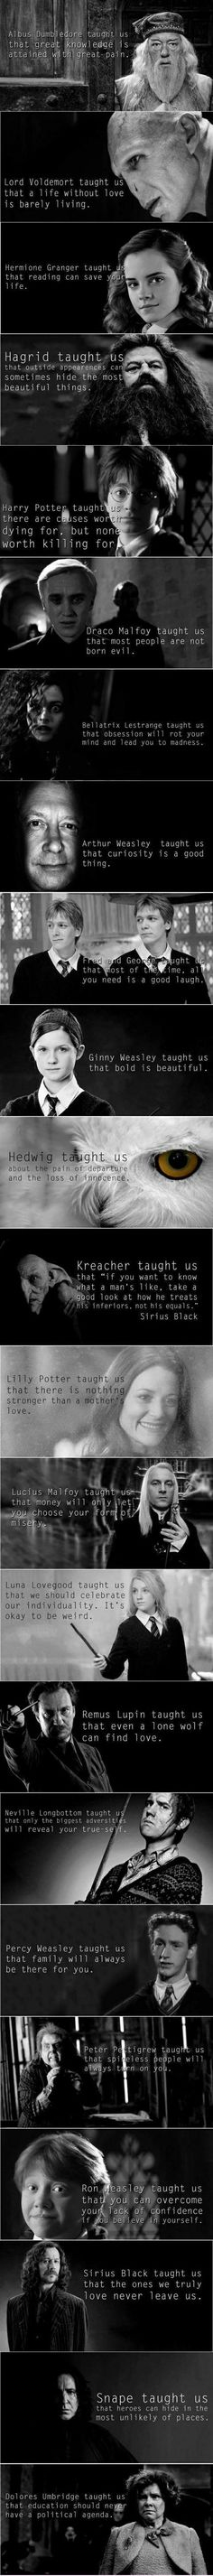 James potter told us that a bully can become a great man and lily is spelled wrong